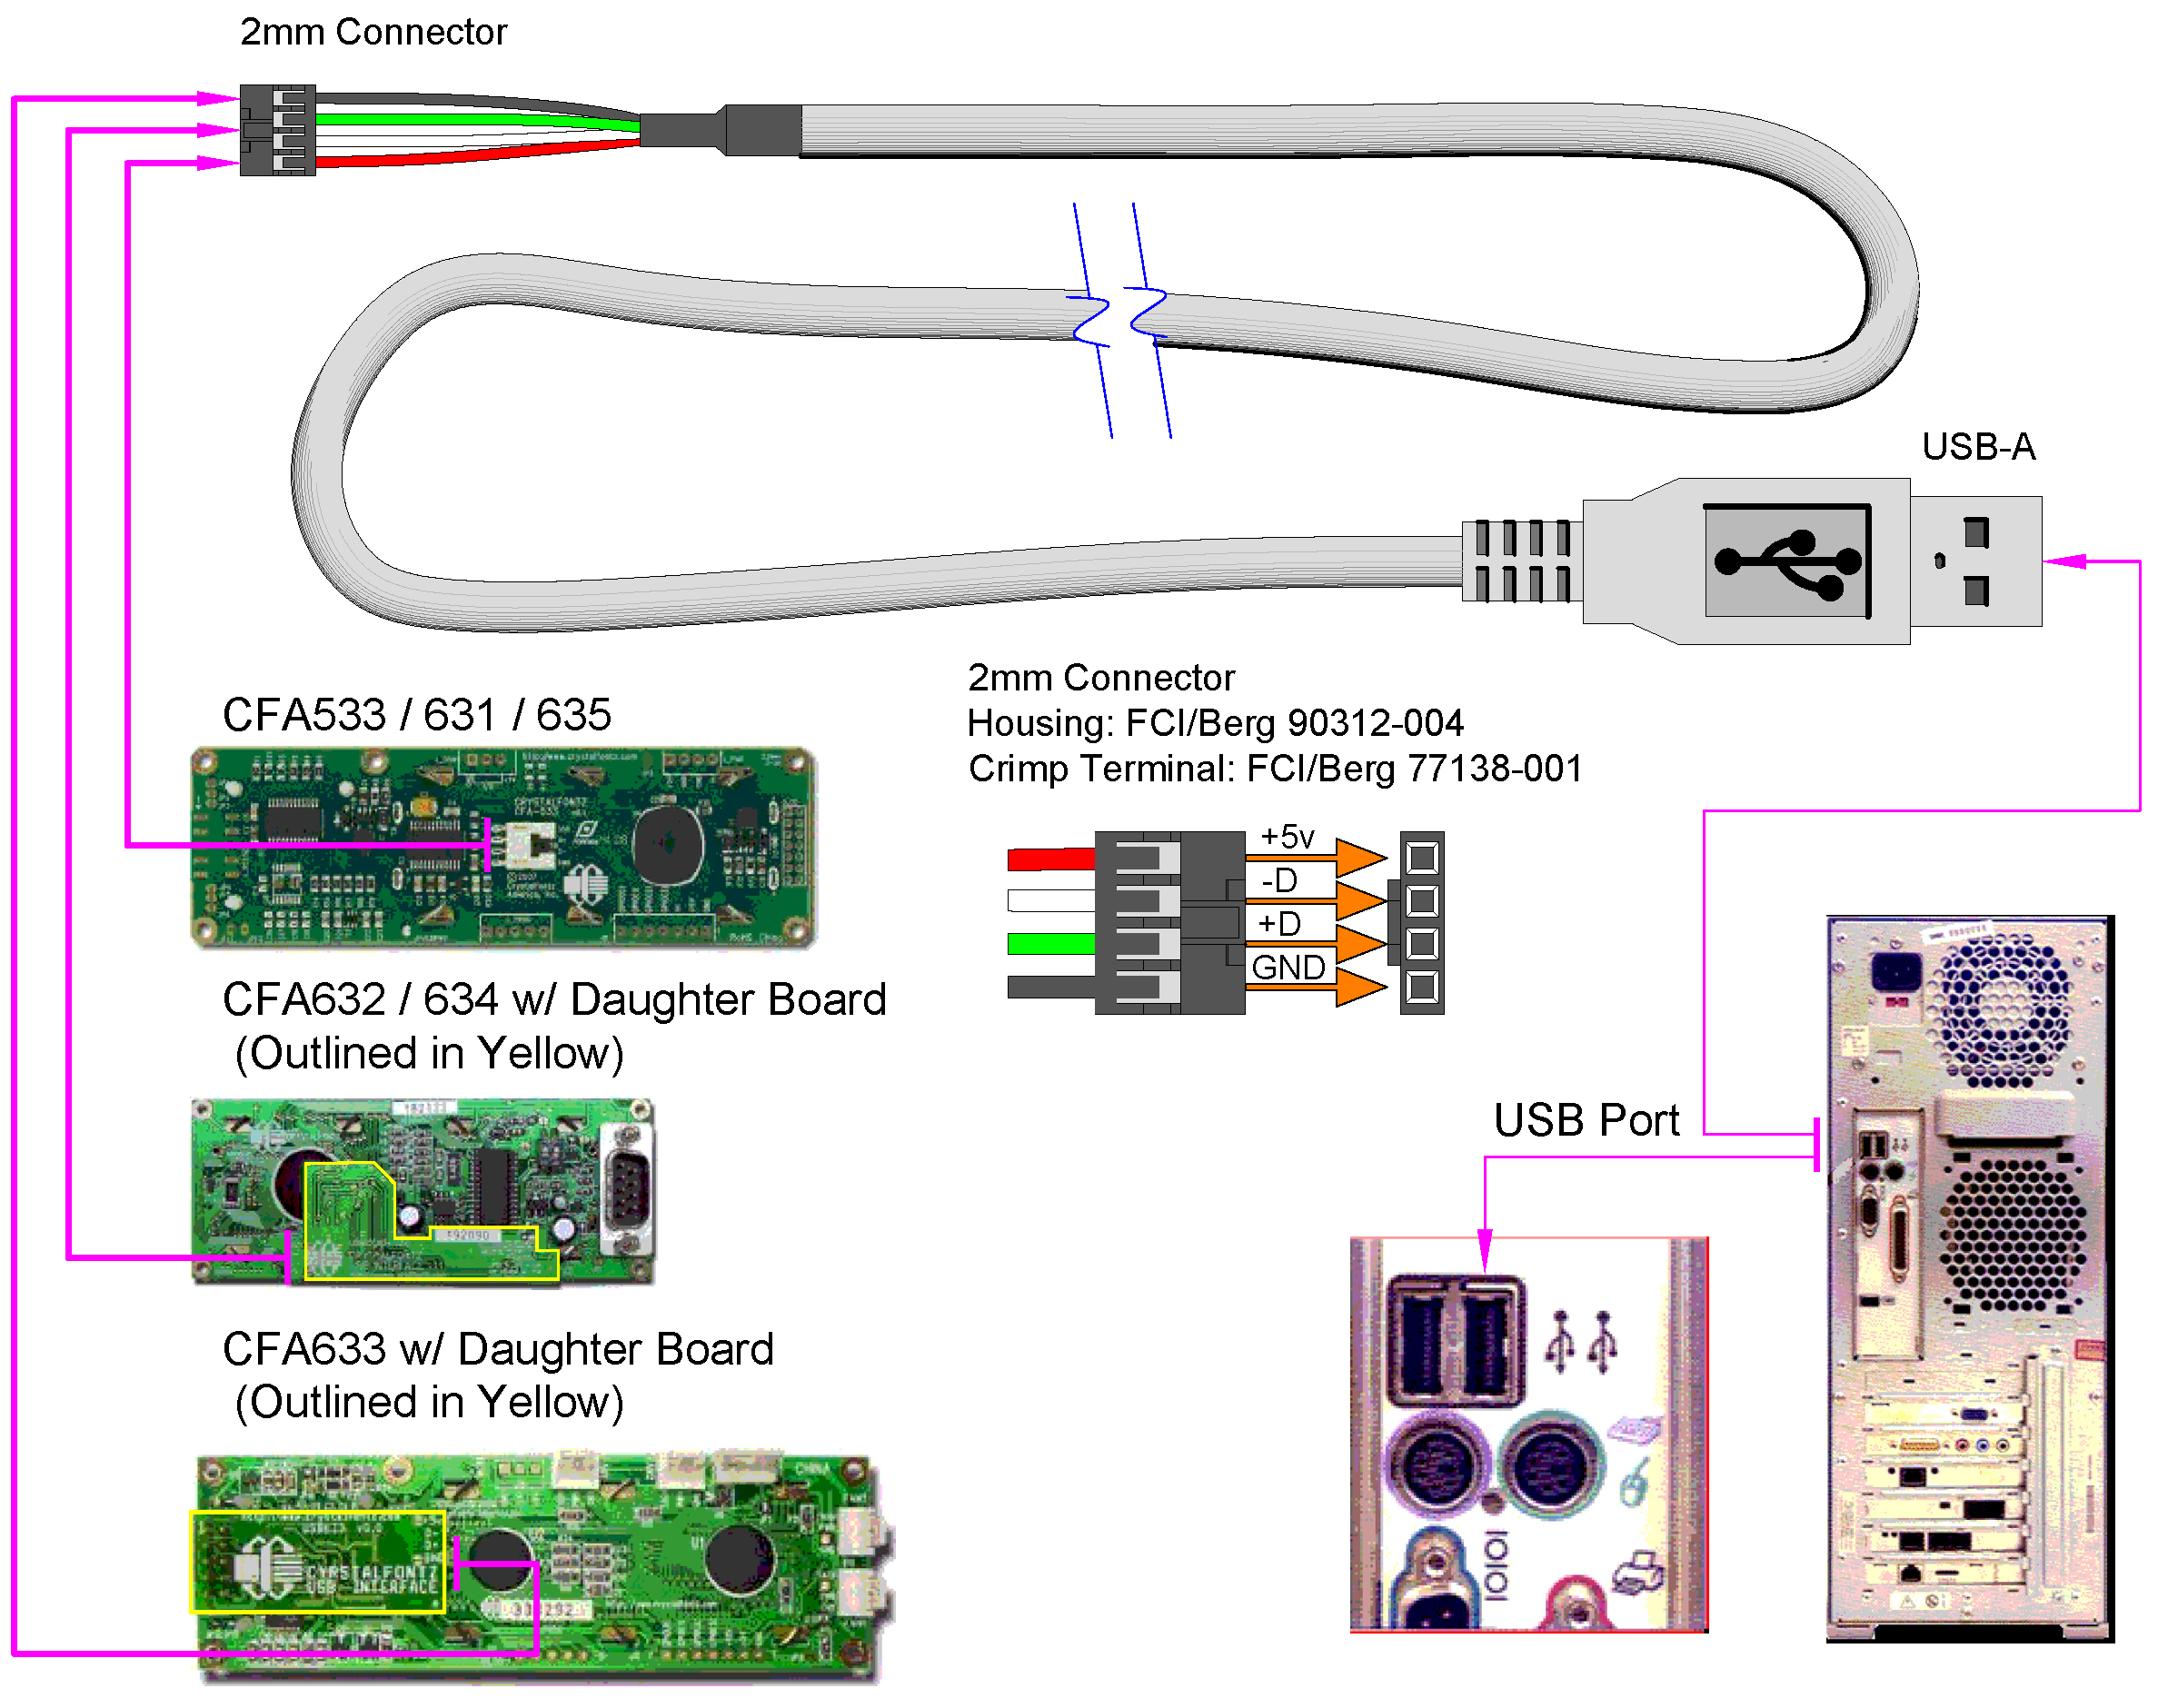 female usb to rj45 cable wiring diagram hampton by hilton a 2mm lcd wrusby03 from crystalfontz